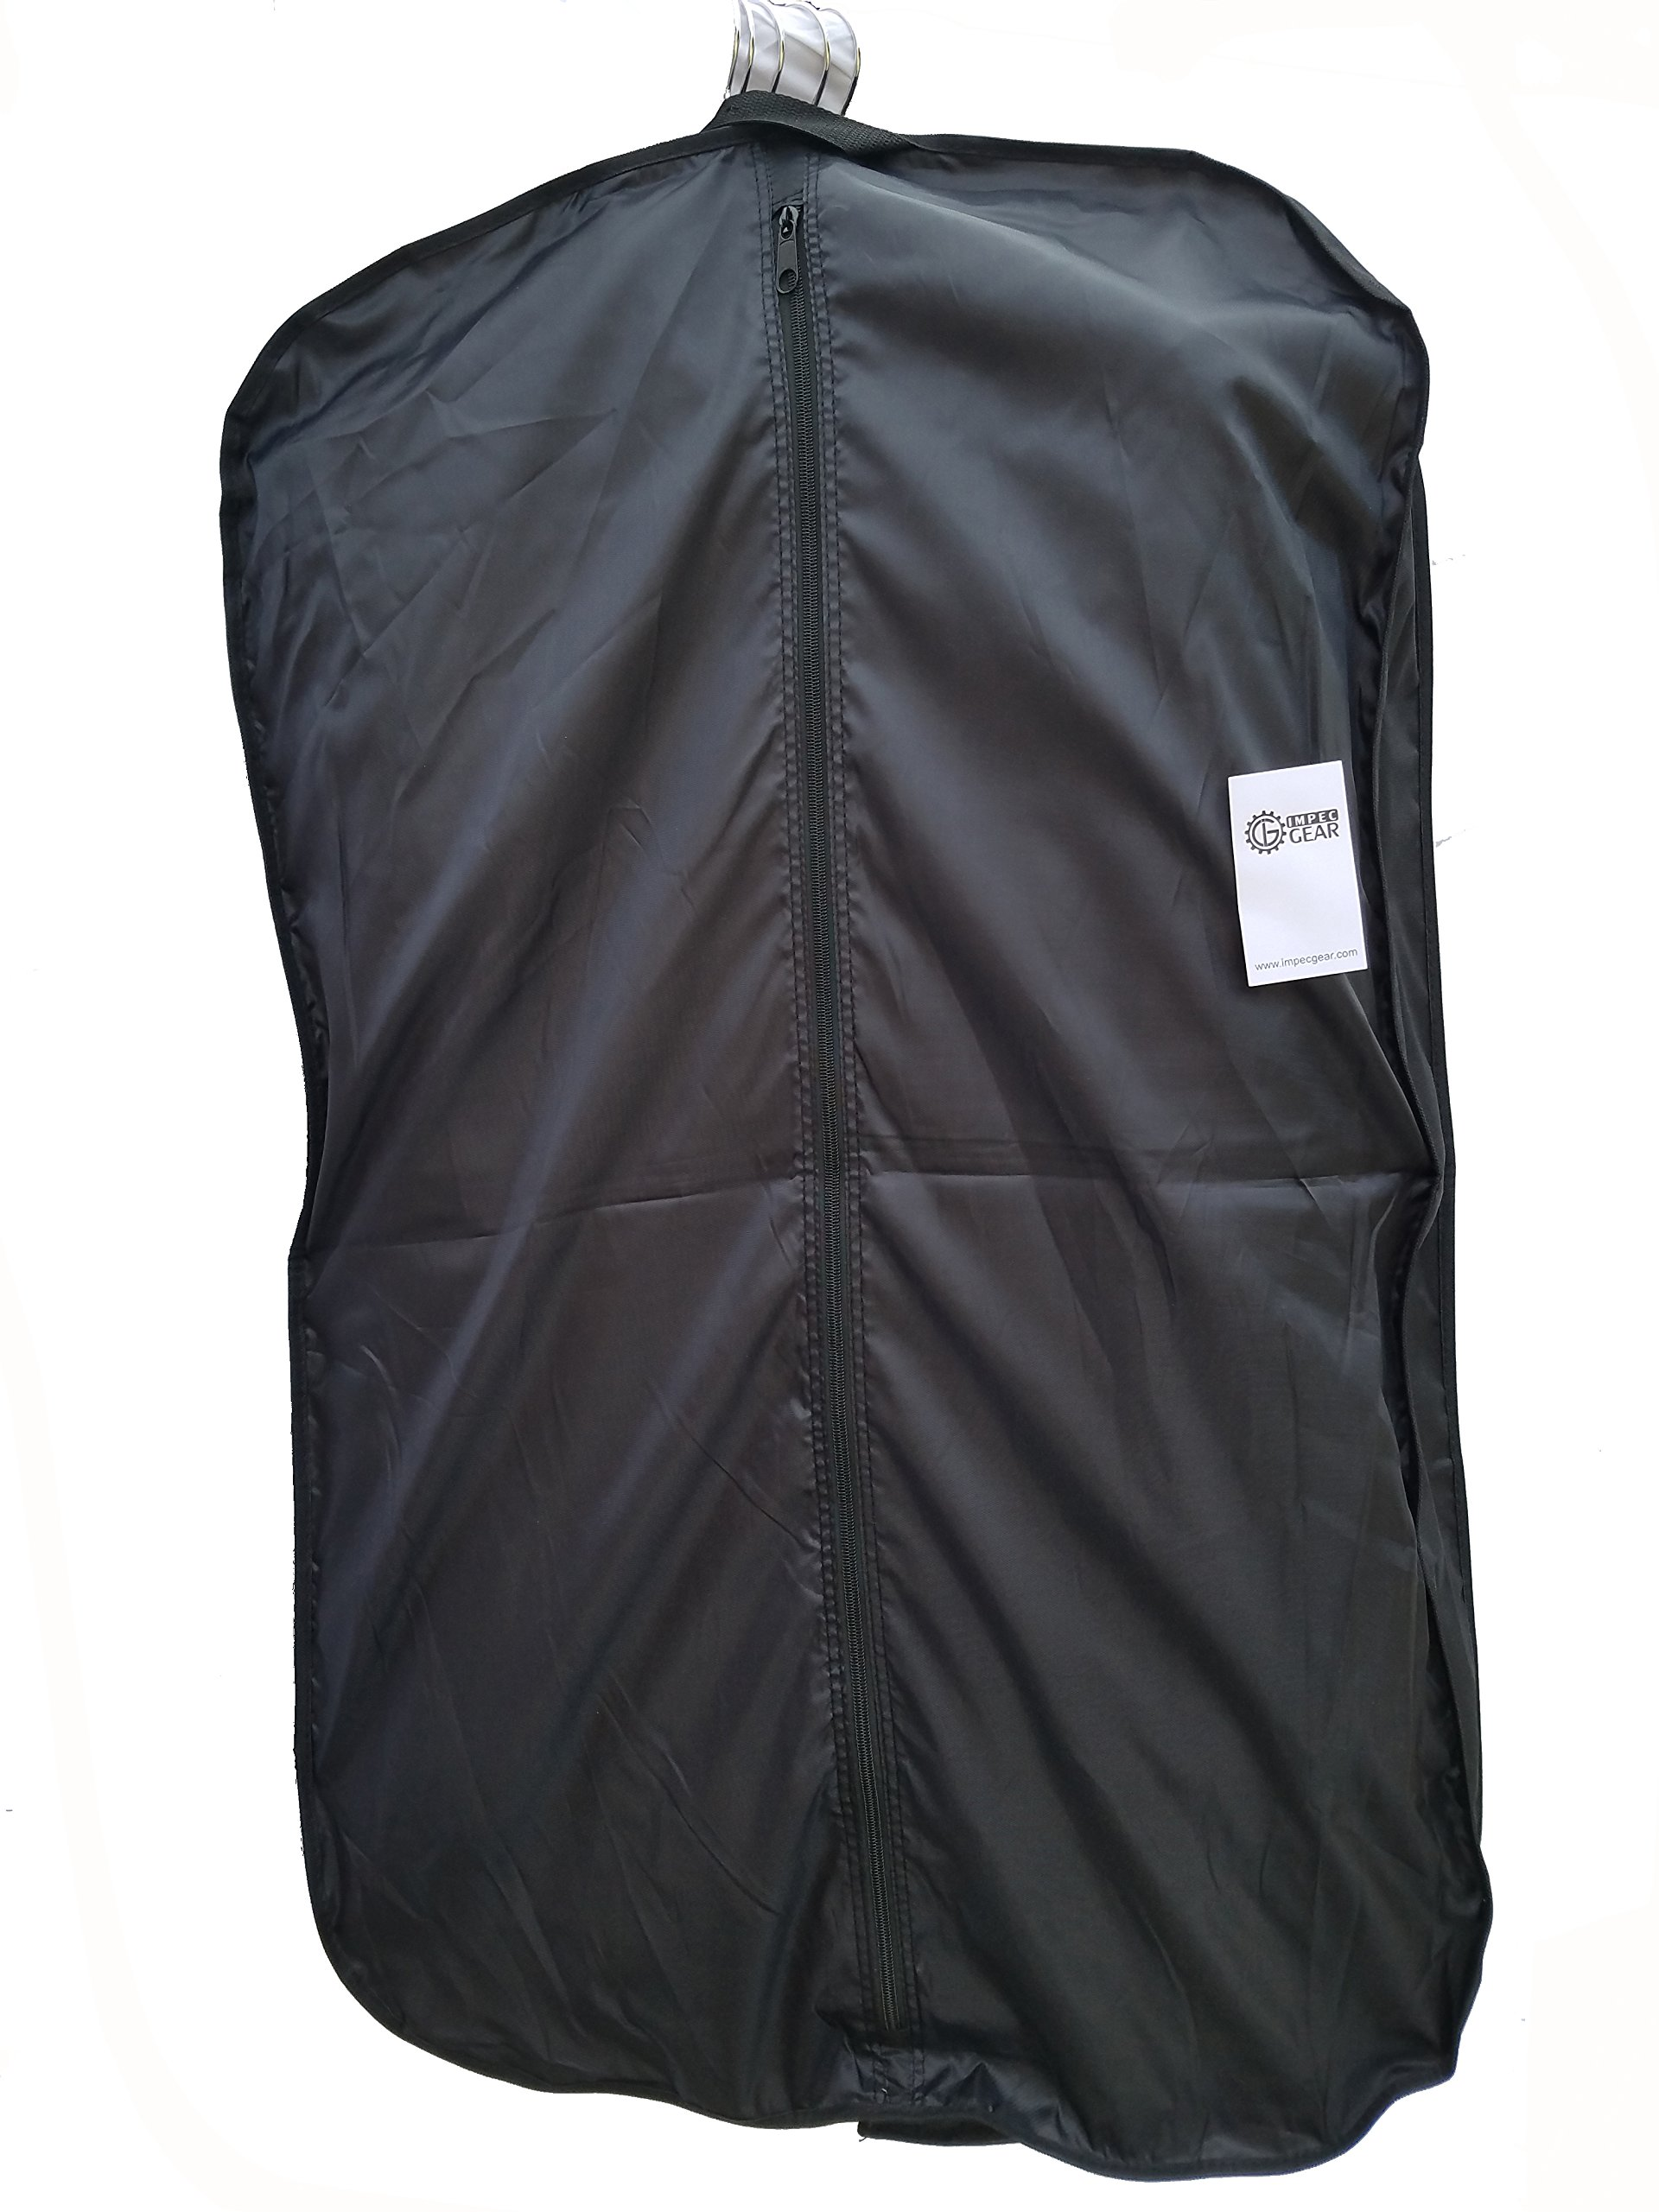 "39"" Business Garment Bag Cover Suits & Dresses Clothing Foldable w Pockets """